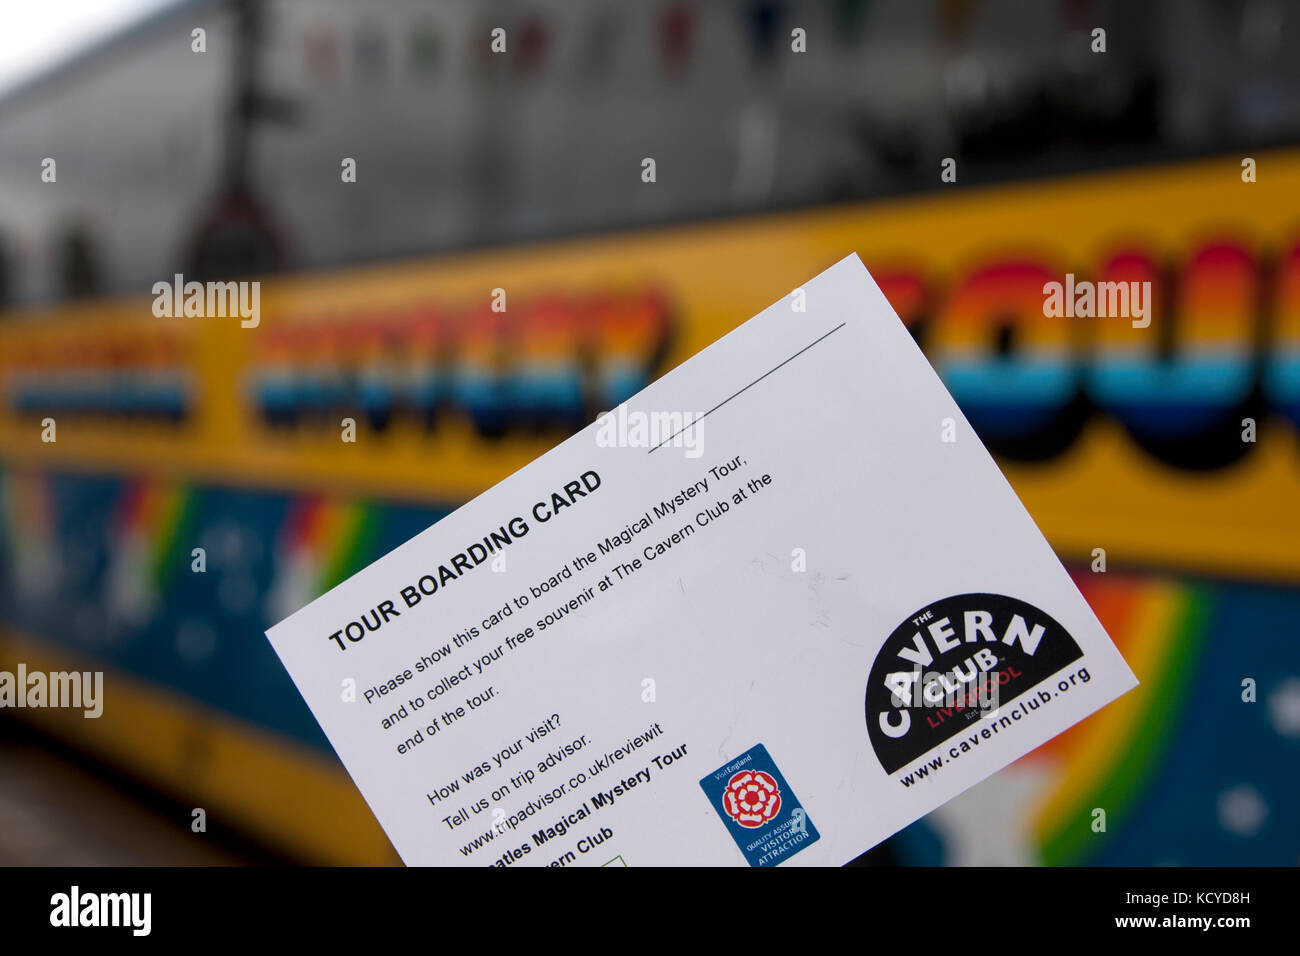 Magical Mystery Tour pass for the Cavern Club, Albert Dock, Liverpool, Merseyside - Stock Image